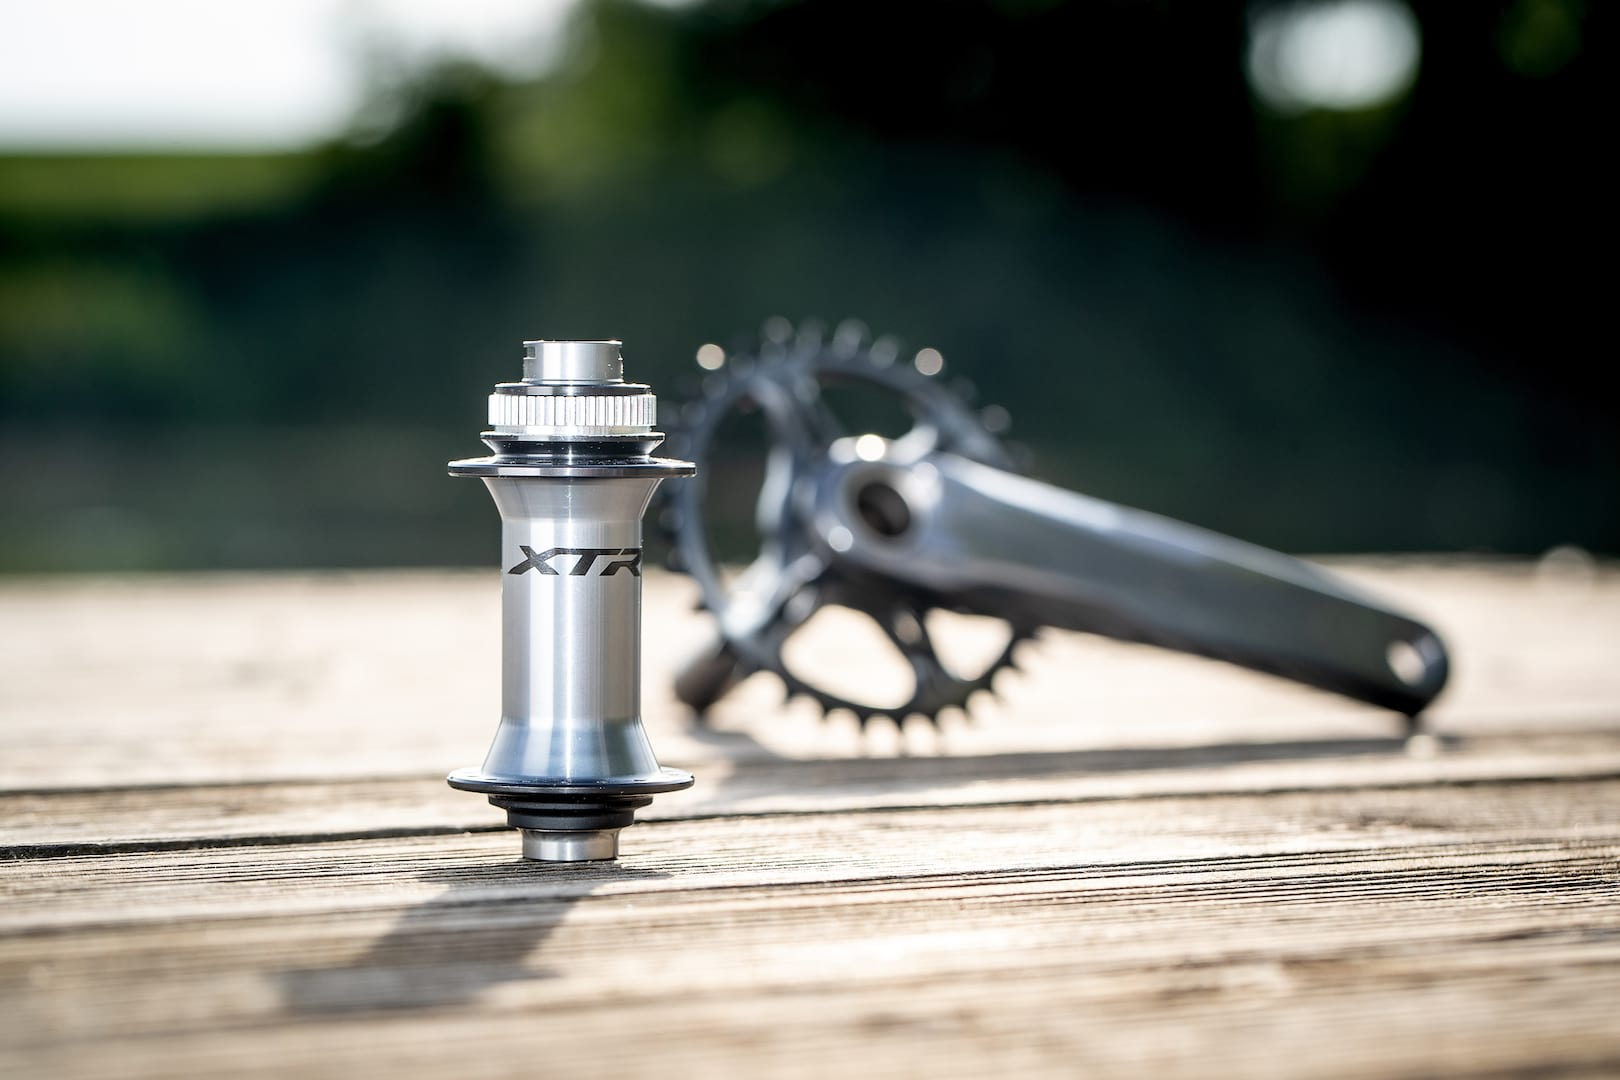 First Ride Review: Quiet hubs and smooth shifting - Shimano